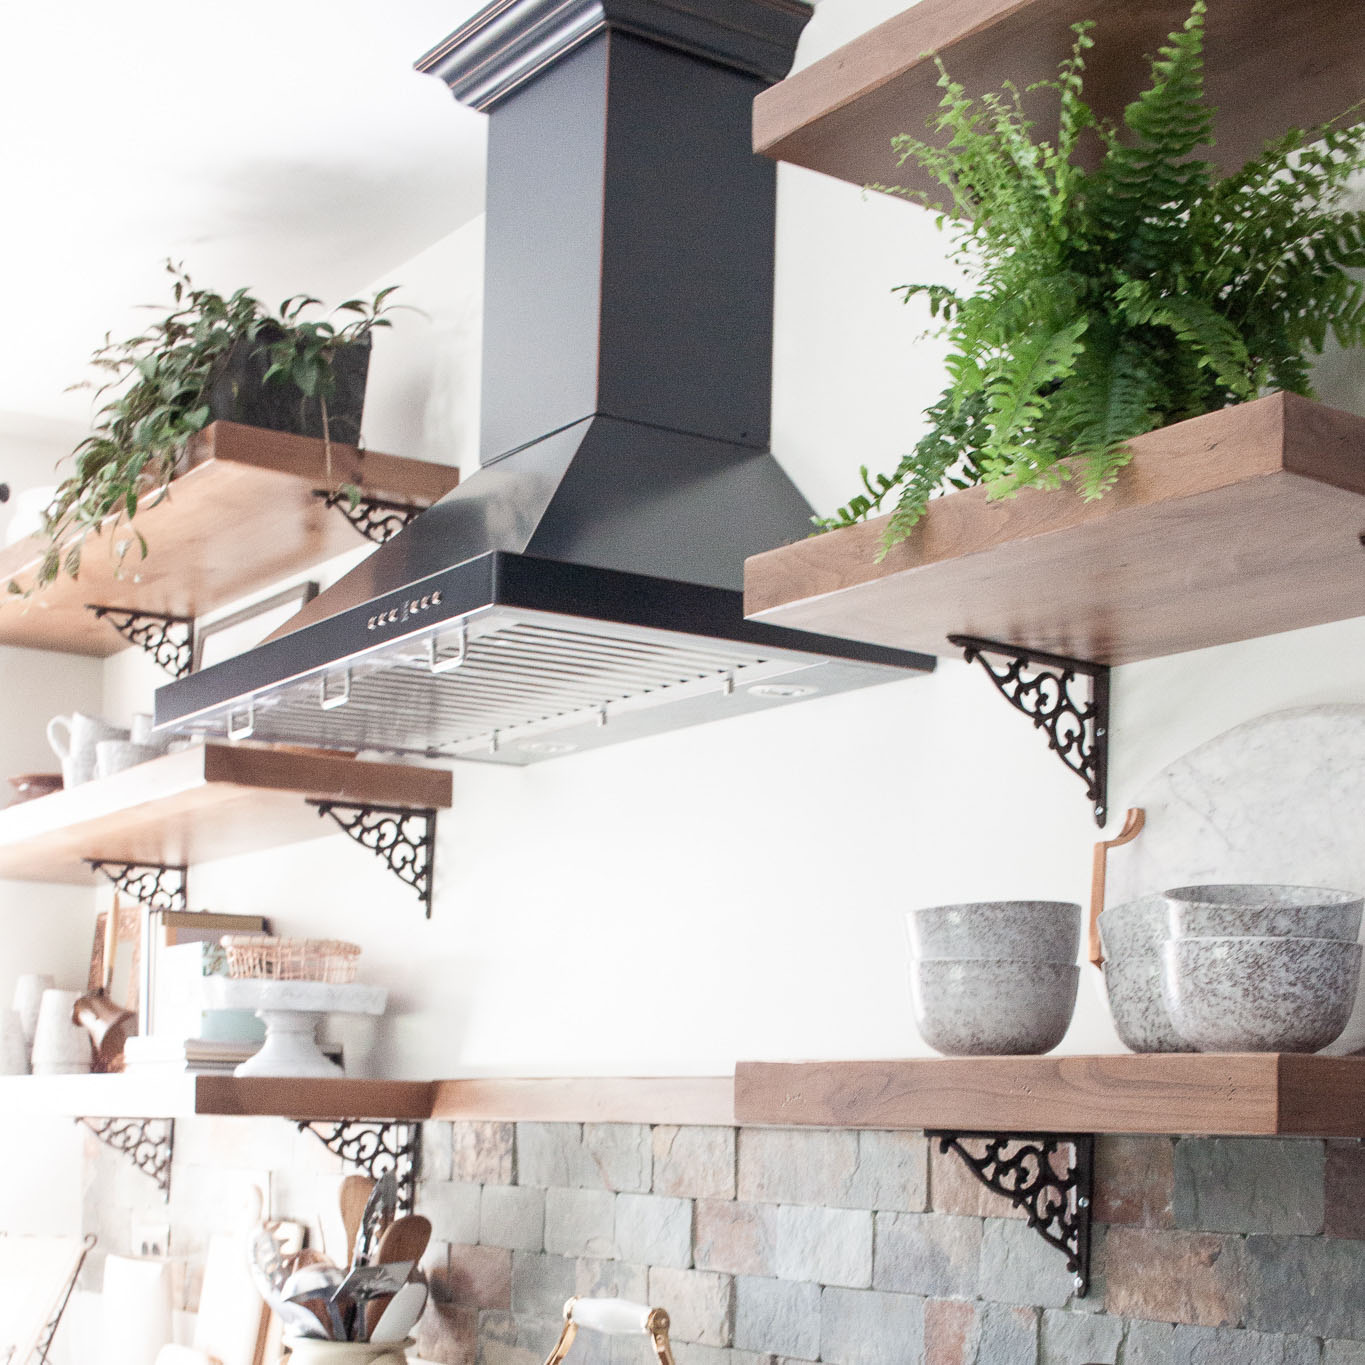 zline-copper-wall-mounted-range-hood-8KBB-customer-photo2-sq1 copy.jpg